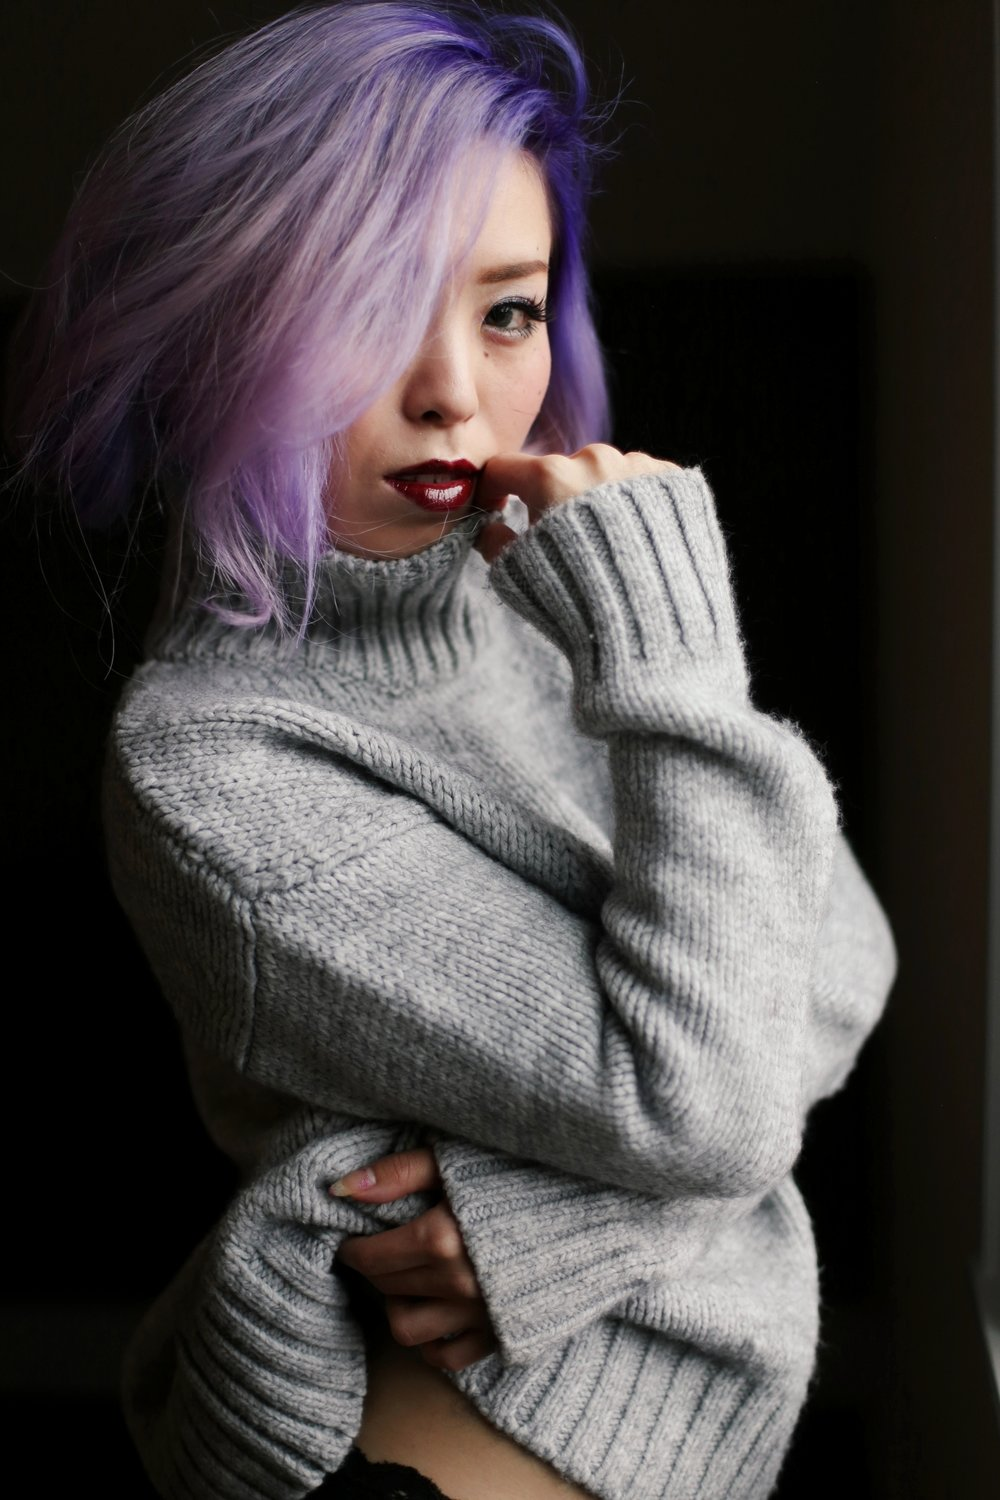 Boudoir Photo-black and white photography-sweater weather-turtle neck sweater-black lingerie-dark lipstick-japanese-Aika's Love Closet-Seattle model-Seattle Style blogger-Lavender Hair-colored Hair-Mermaid Hair-Zara Sweater 4